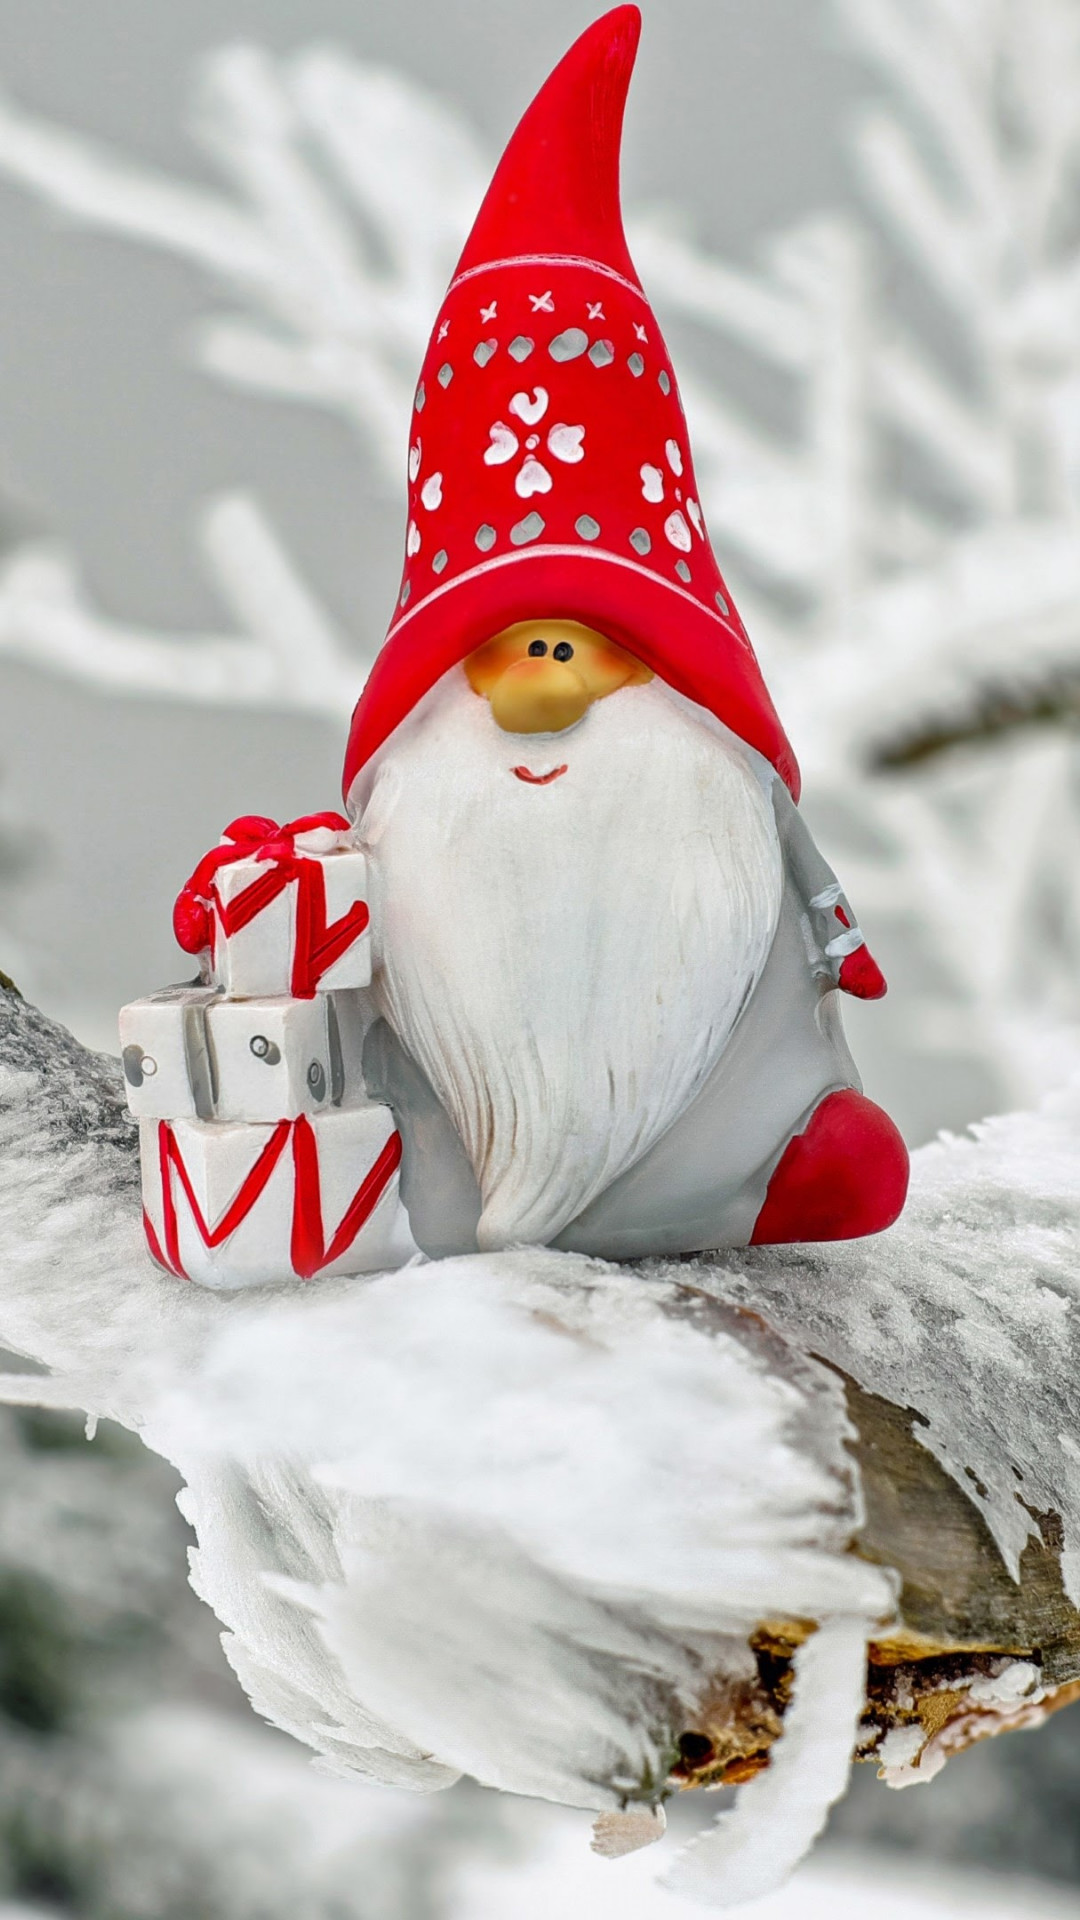 Santa Claus figurine | 1080x1920 wallpaper